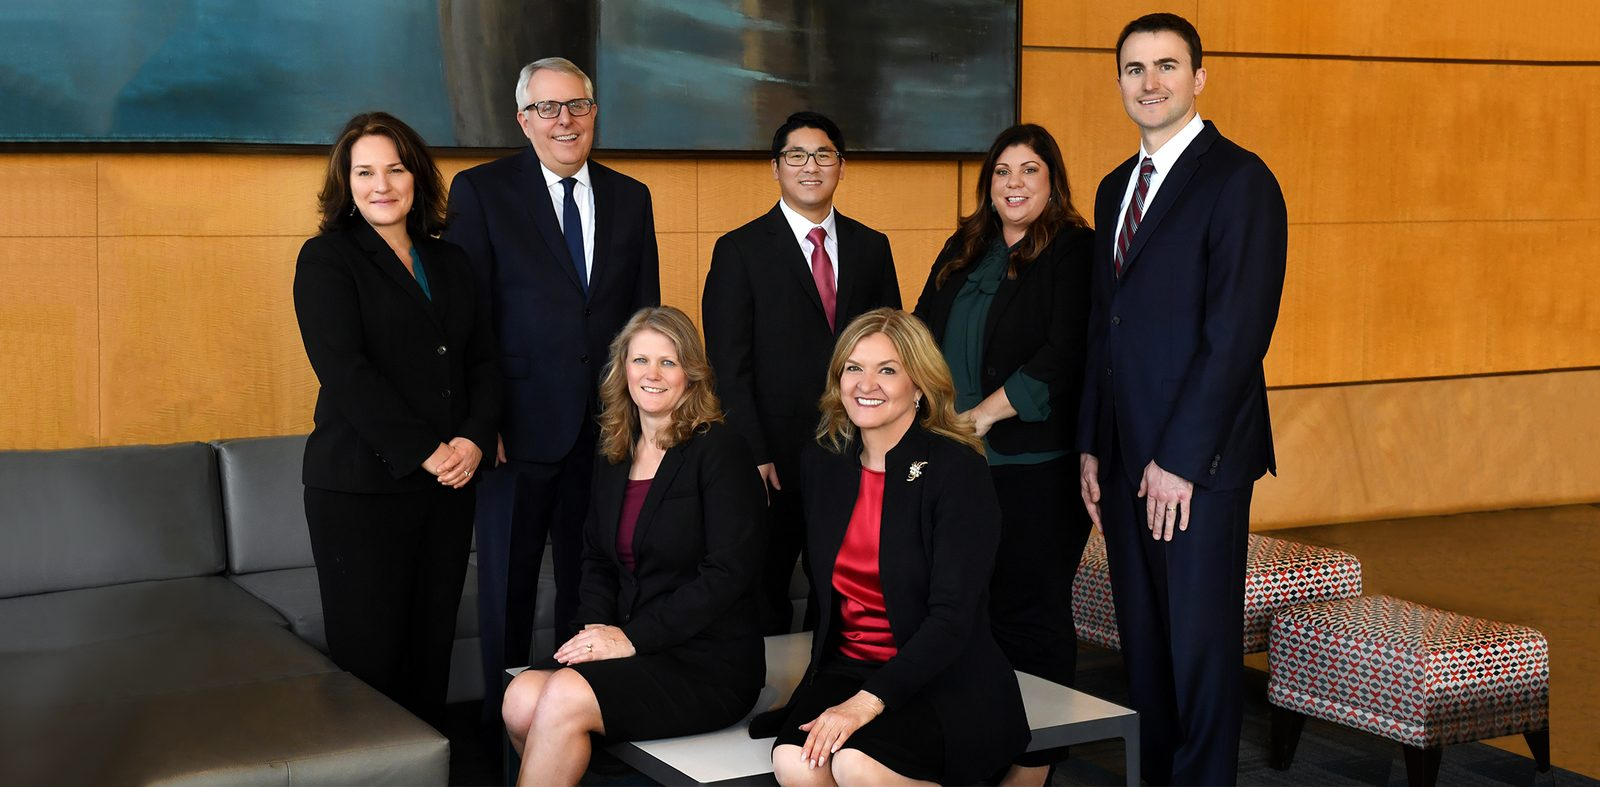 Photo of The Guimarin Shephard Group - Morgan Stanley